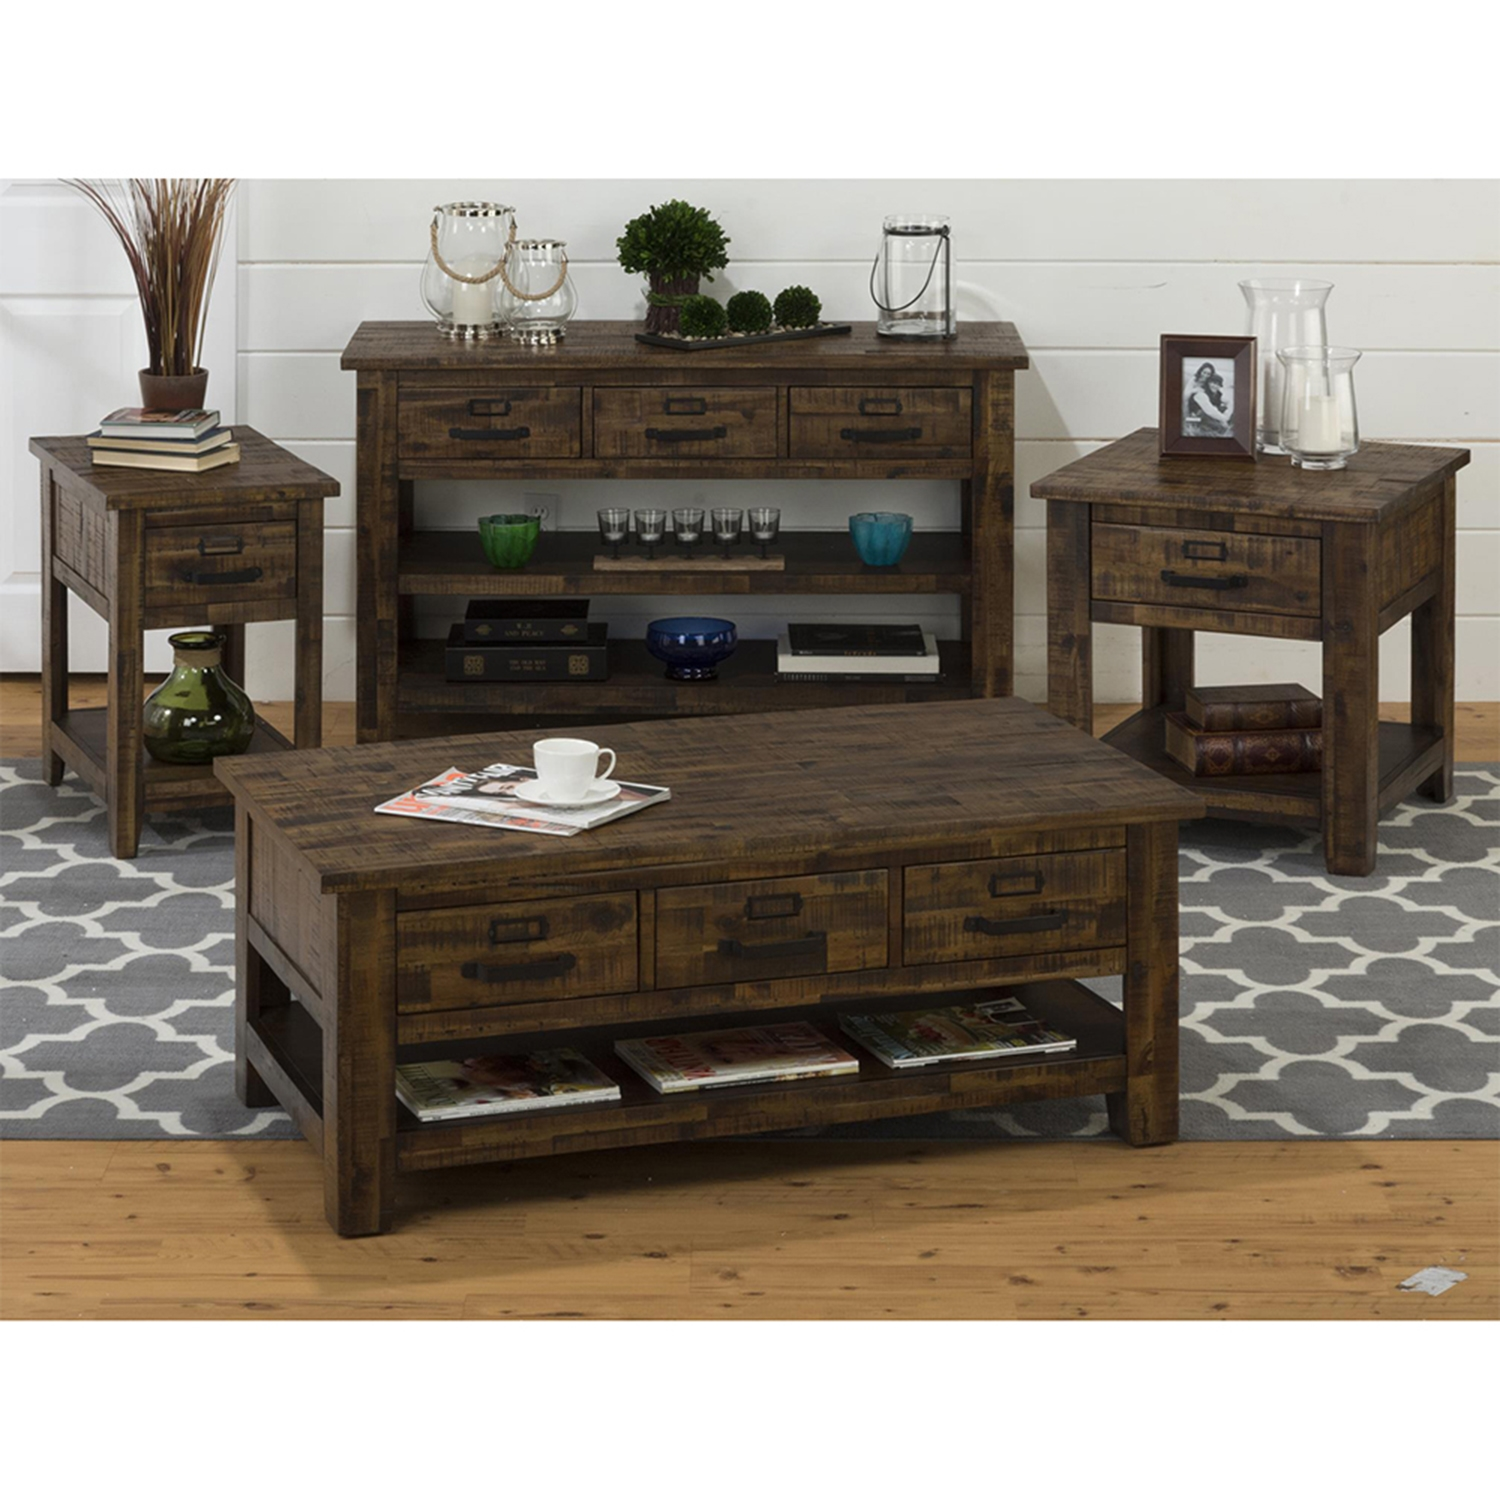 Cannon Valley 1-Drawer Chairside Table - JOFR-1510-7